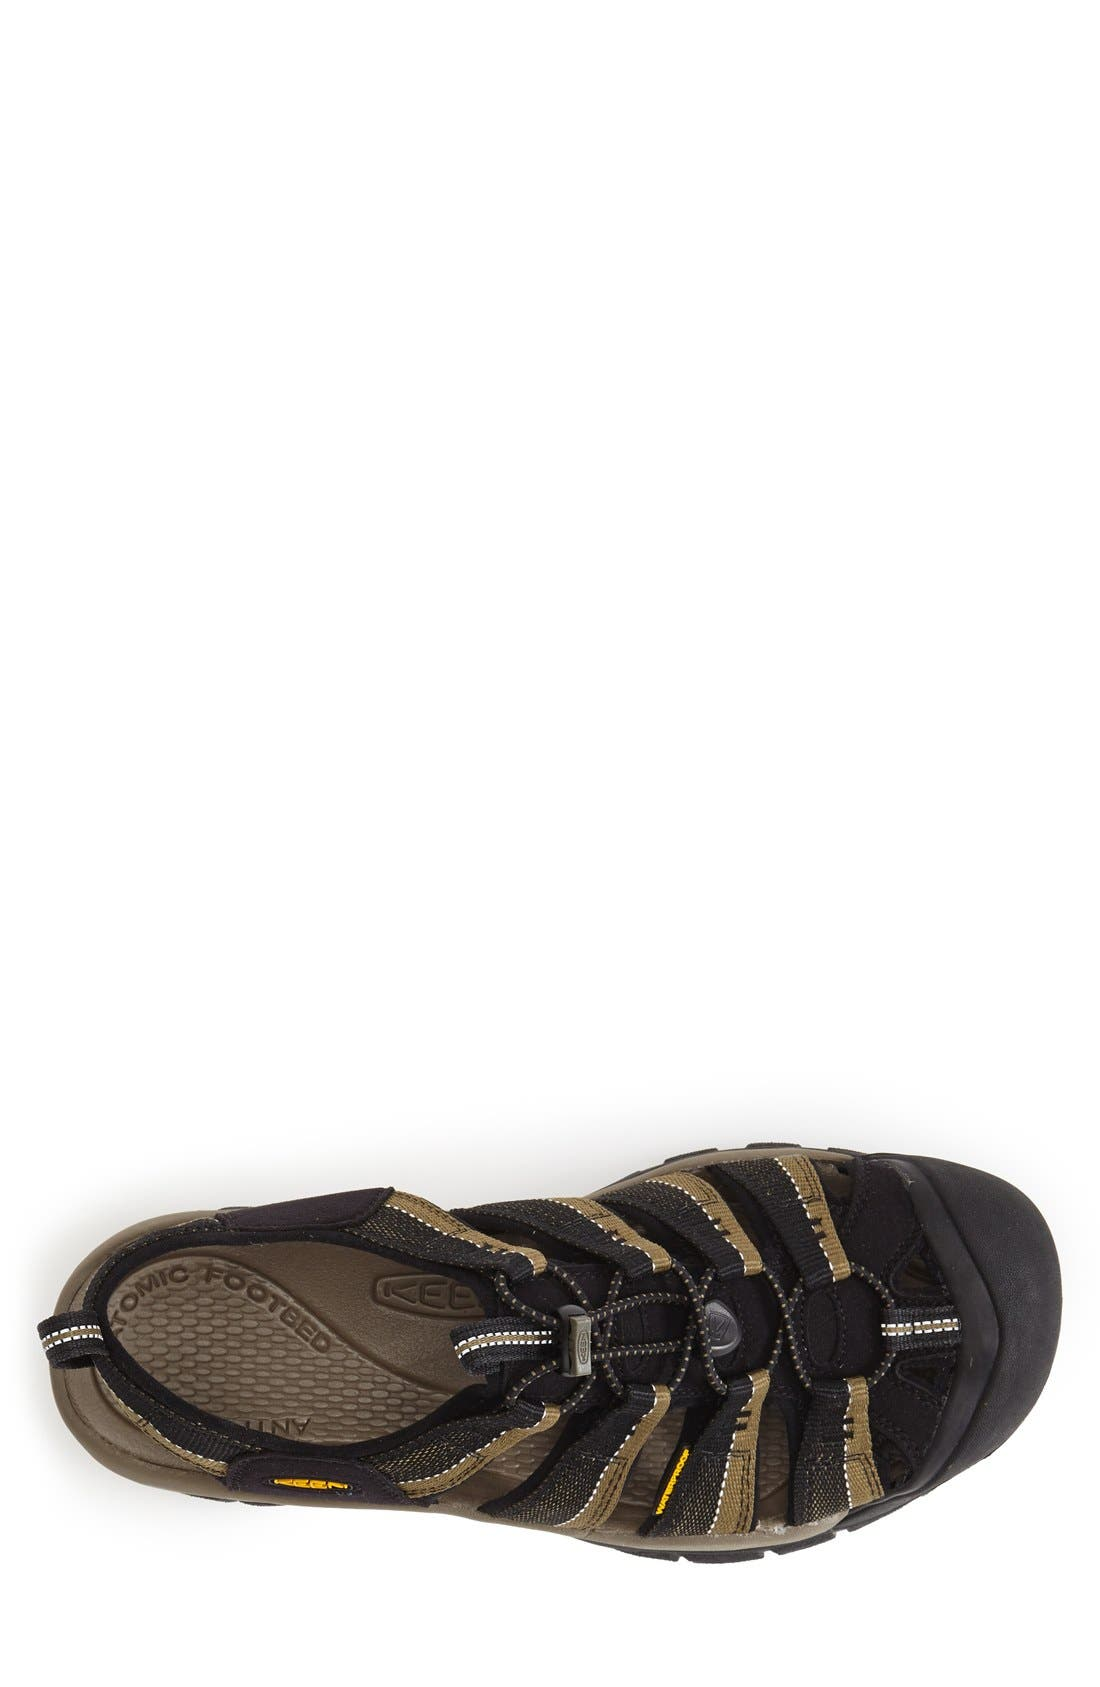 'Newport H2' Sandal,                             Alternate thumbnail 2, color,                             BLACK/ STONE GREY